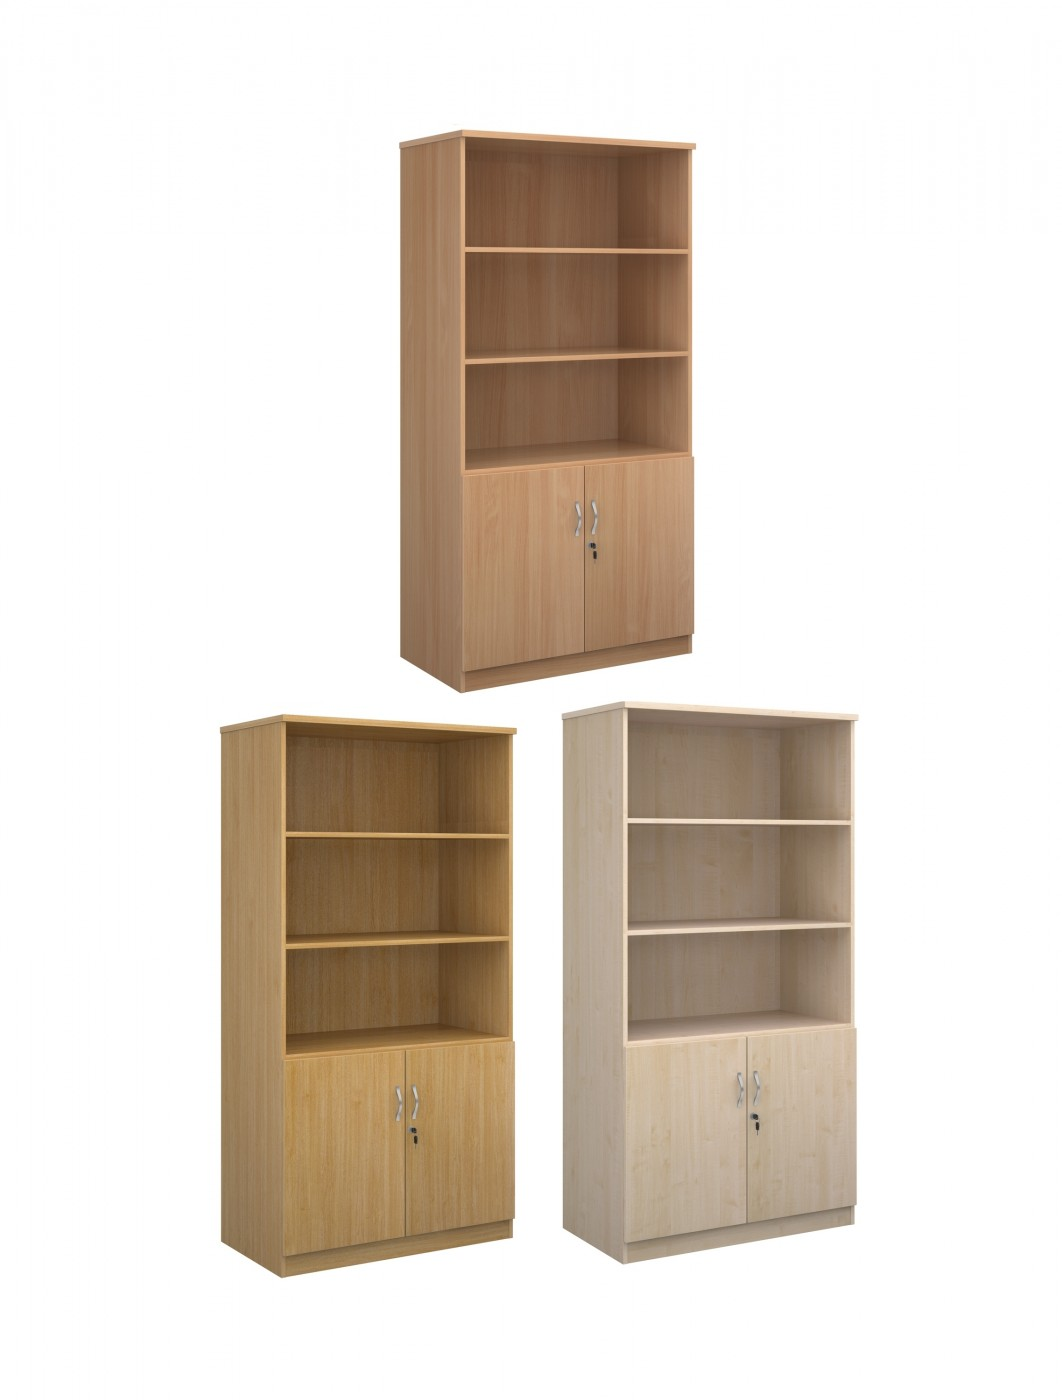 Marvelous photograph of DO20 2000mm High Deluxe Combination Bookcase DO20 with Open Top with #8C6C3F color and 1062x1400 pixels